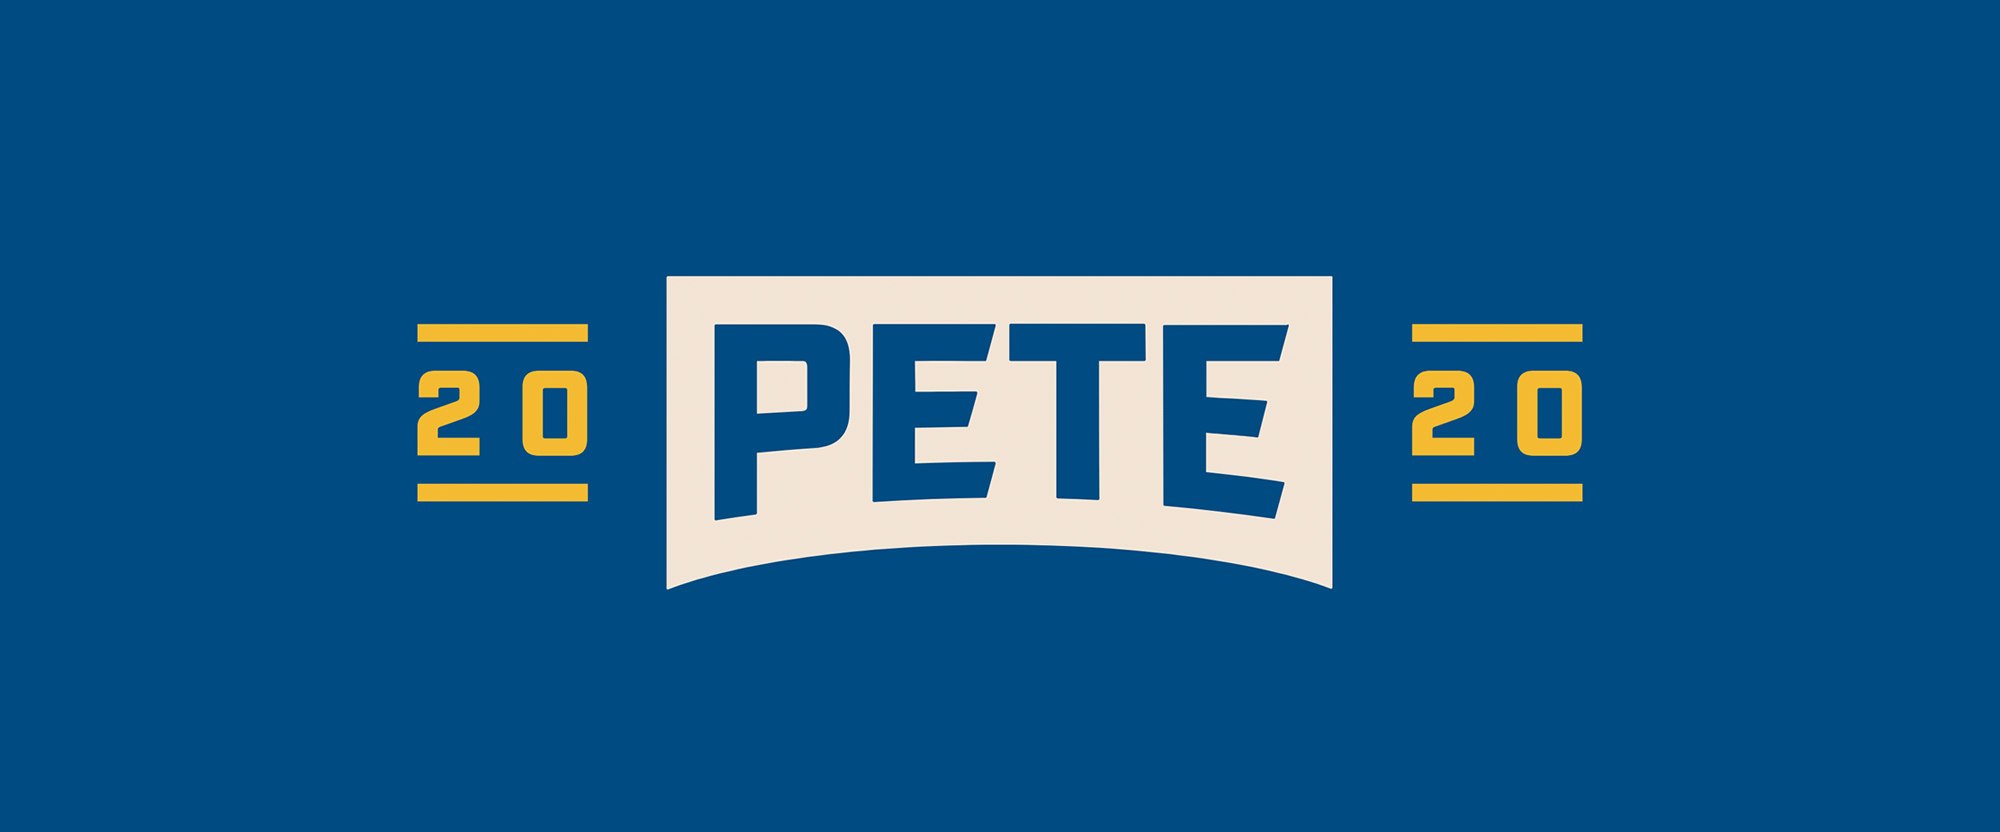 New Logo and Identity for Pete Buttigieg by Hyperakt